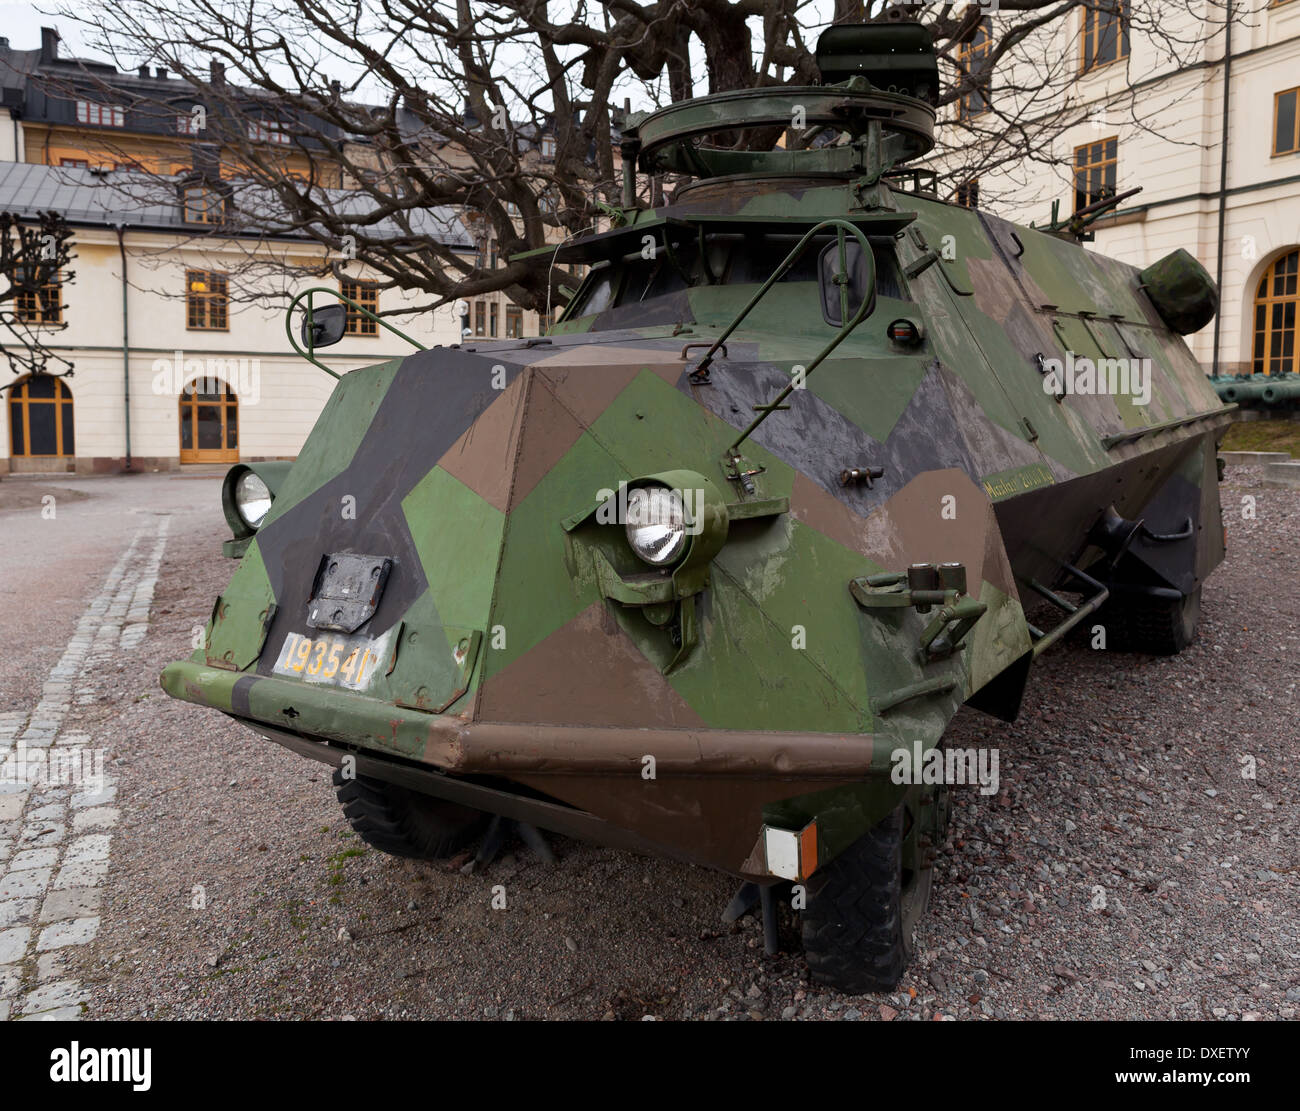 Stockholm, Sweden - KP-bil (KP transport vehicle) at the Armémuseum (army museum) Östermalm - Stock Image